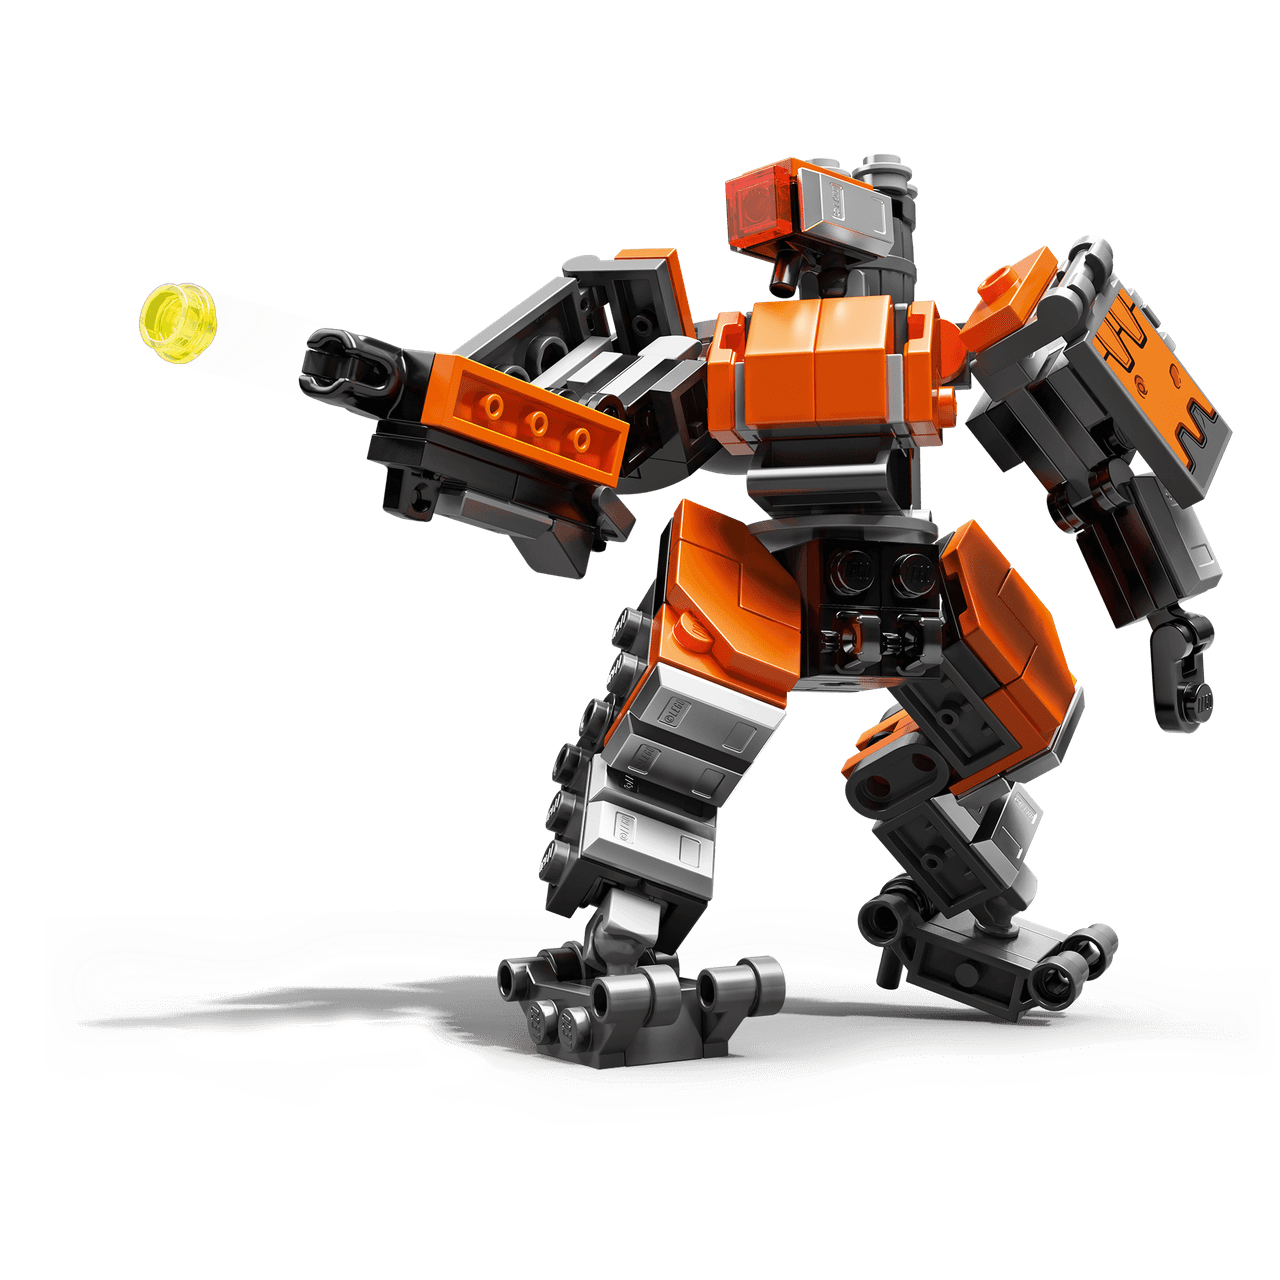 Bastion drawing suit. Lego overwatch first set